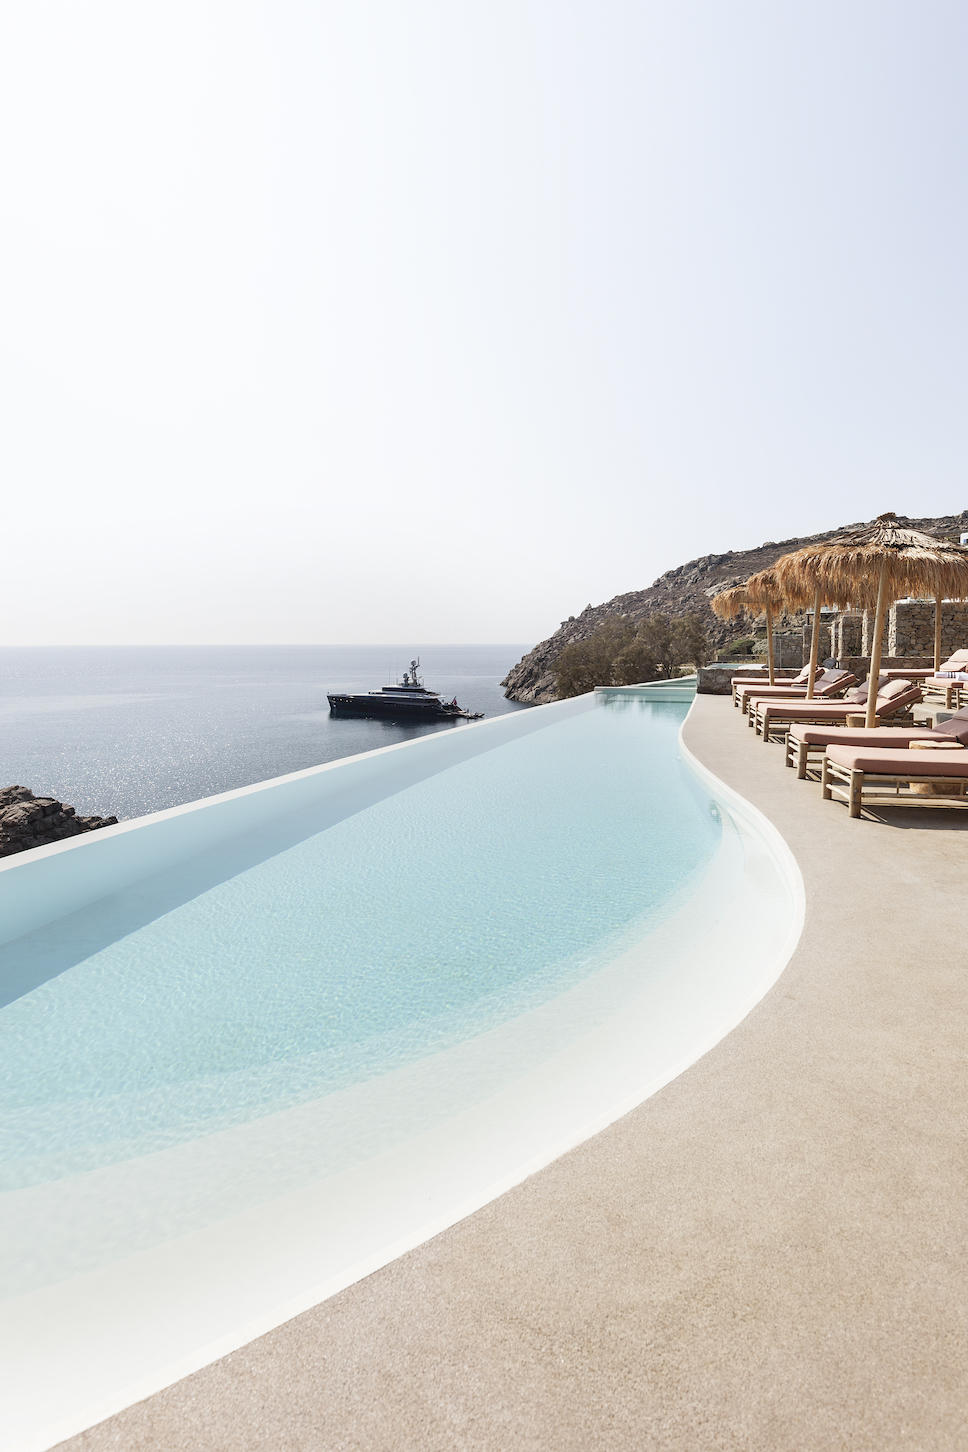 Pinterest Inspiration-The Wild Hotel in Mykonos Cyclades